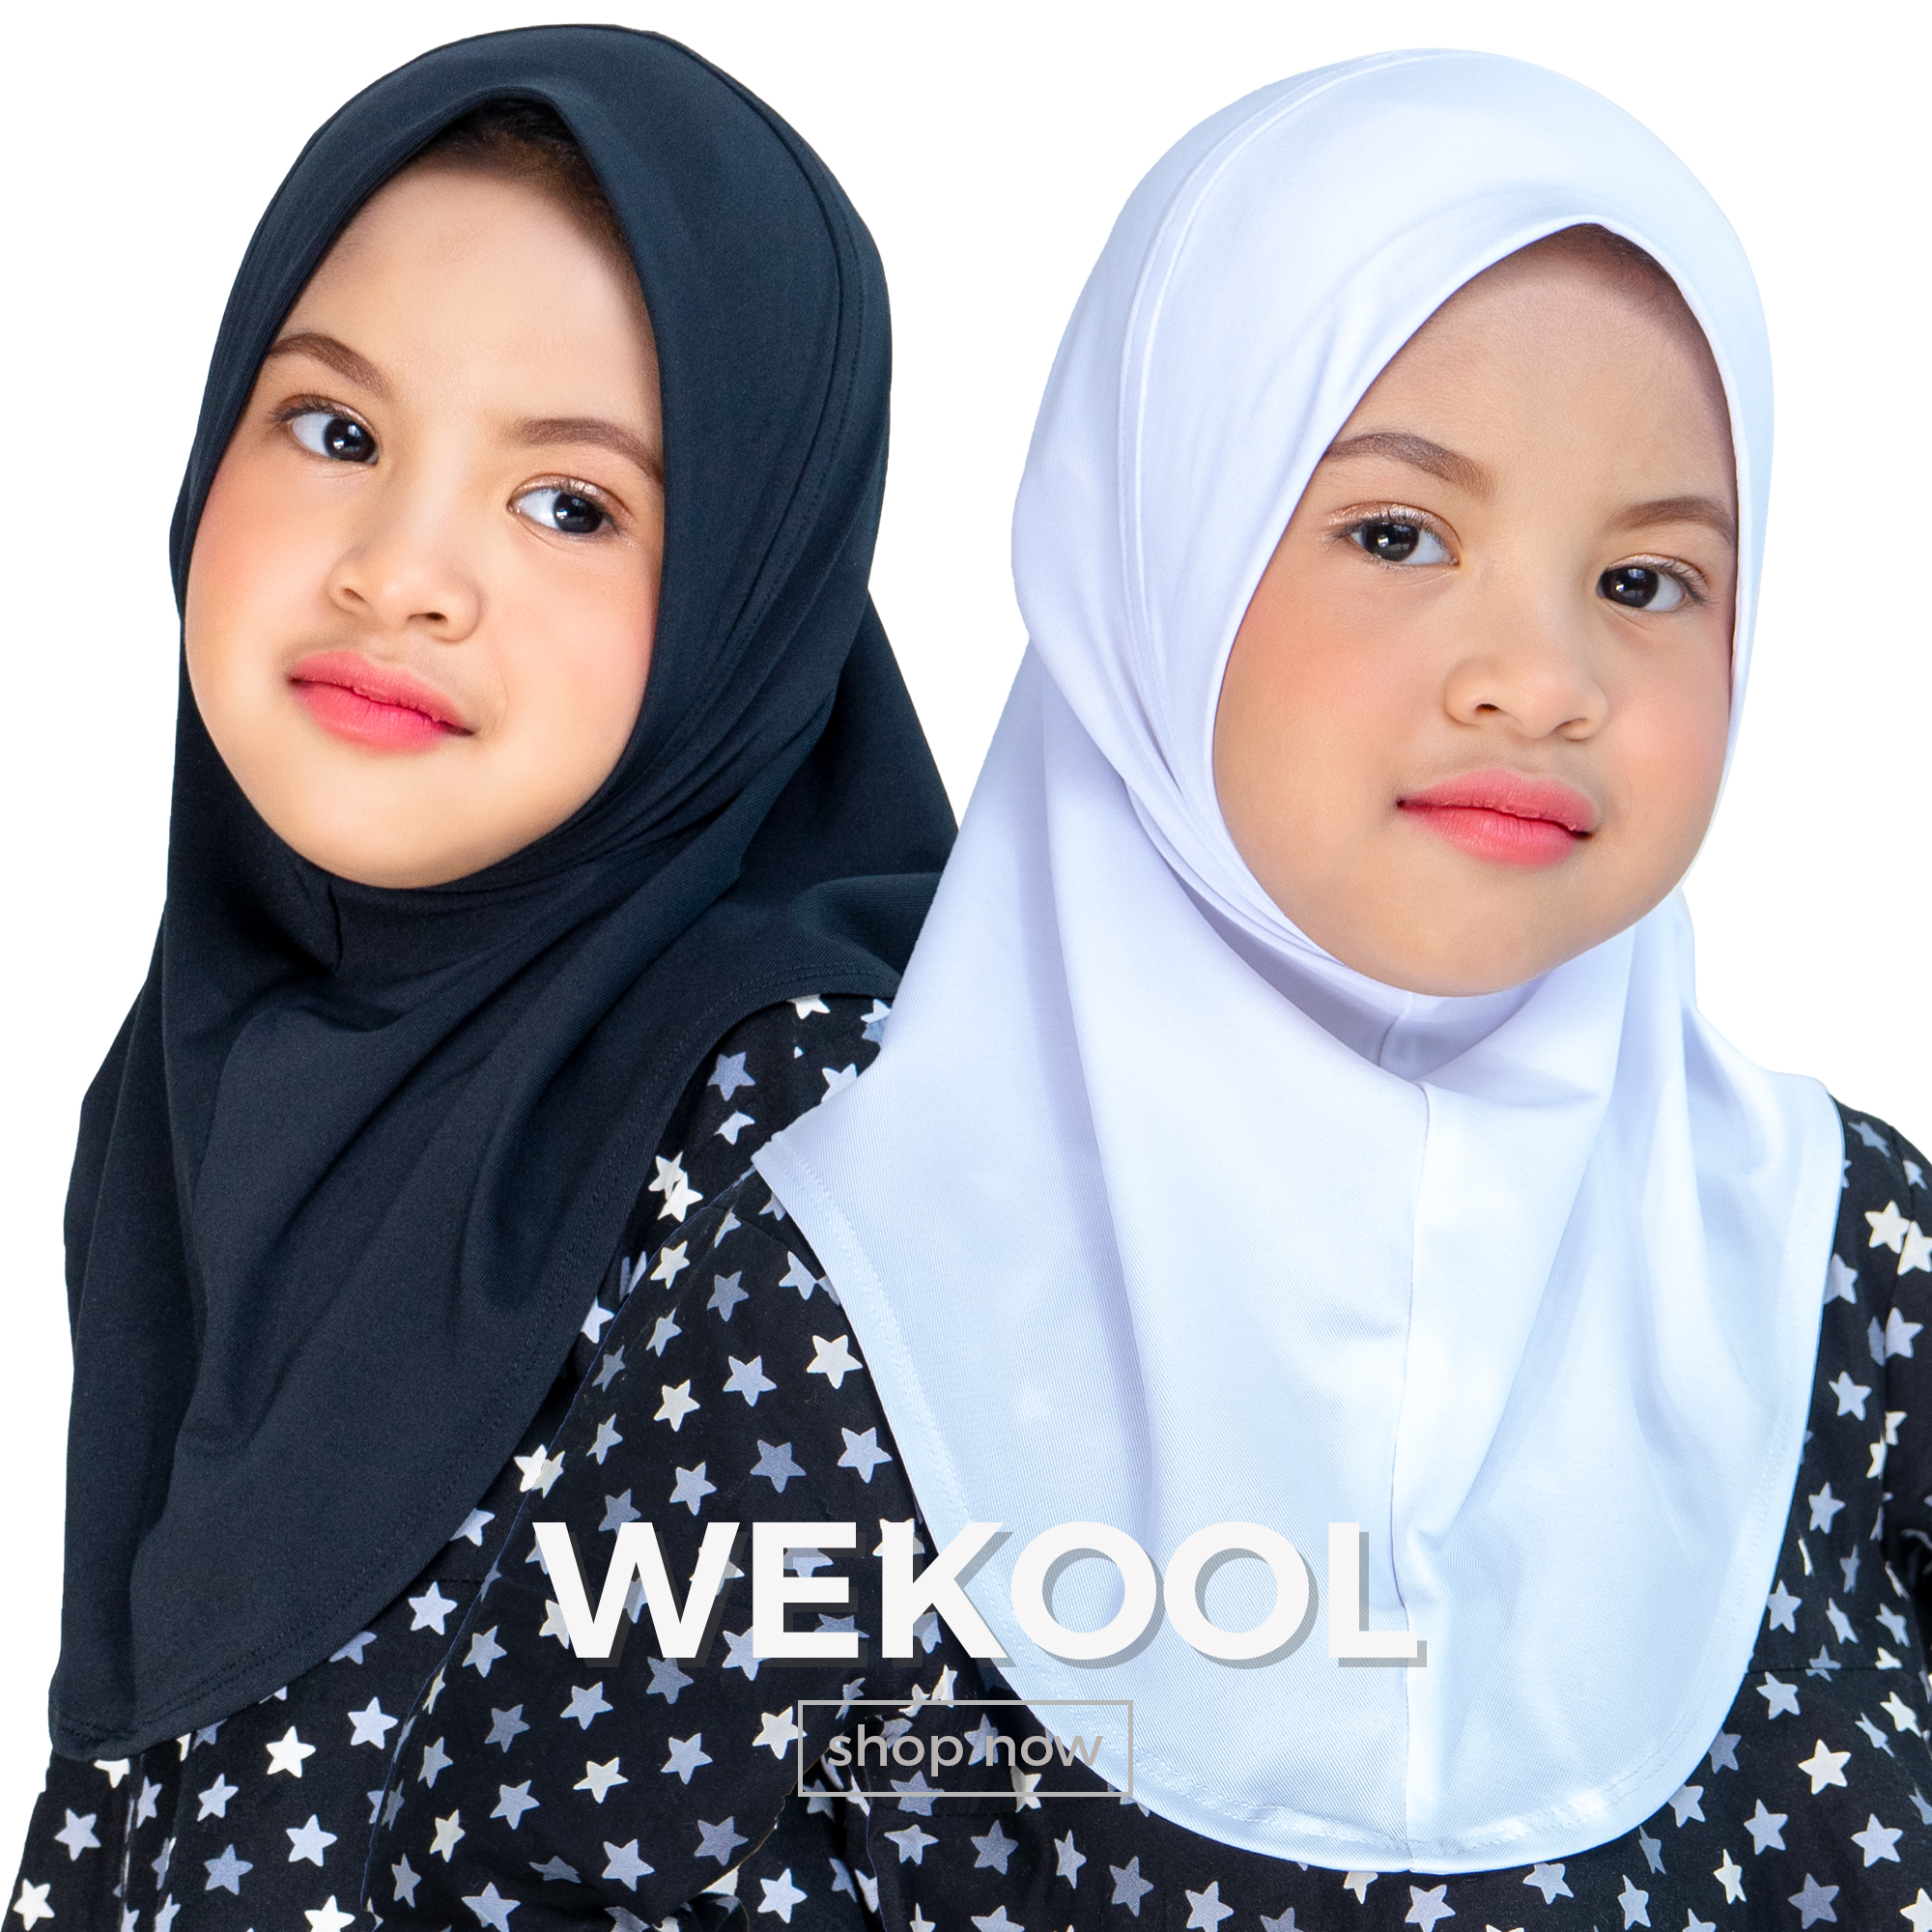 WeKool collection by AIRAZ InnerSejuk